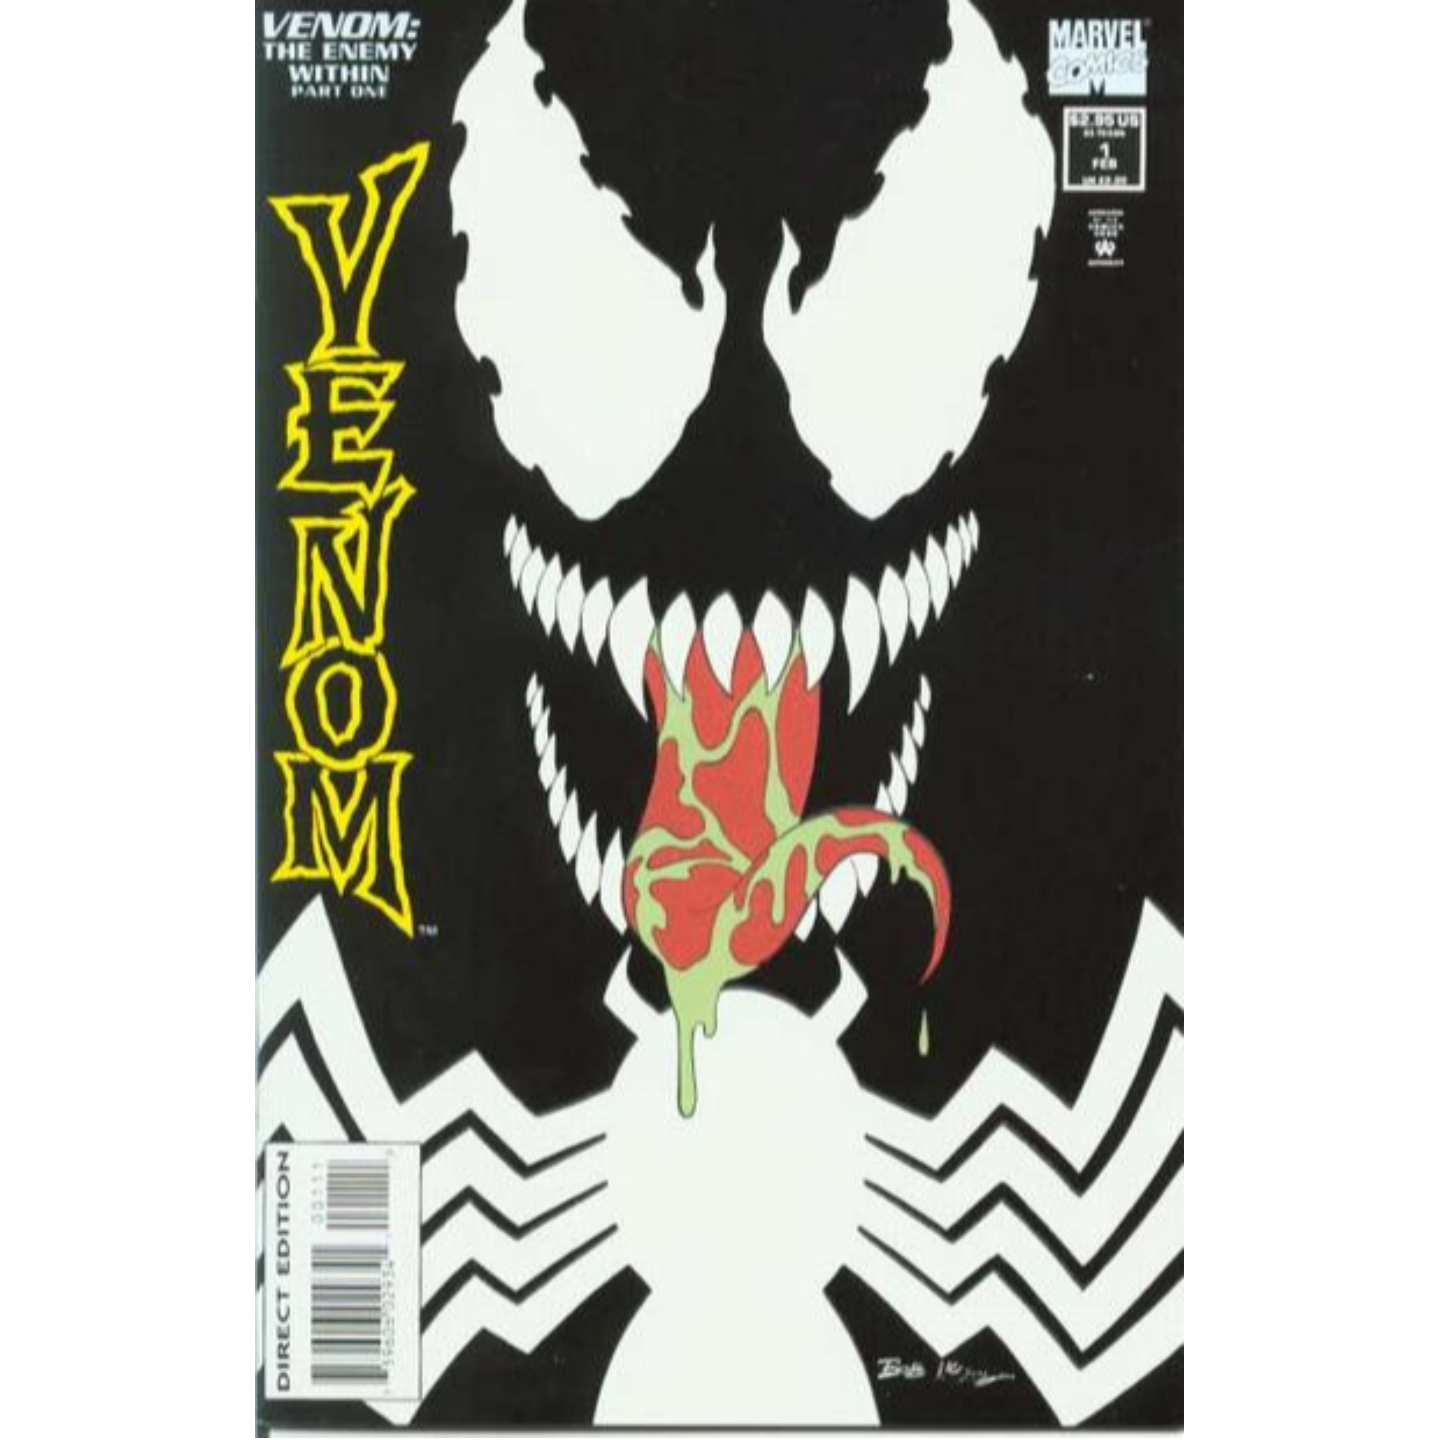 VENOM : THE ENEMY WITHIN #1 - #3 LIMITED SERIES